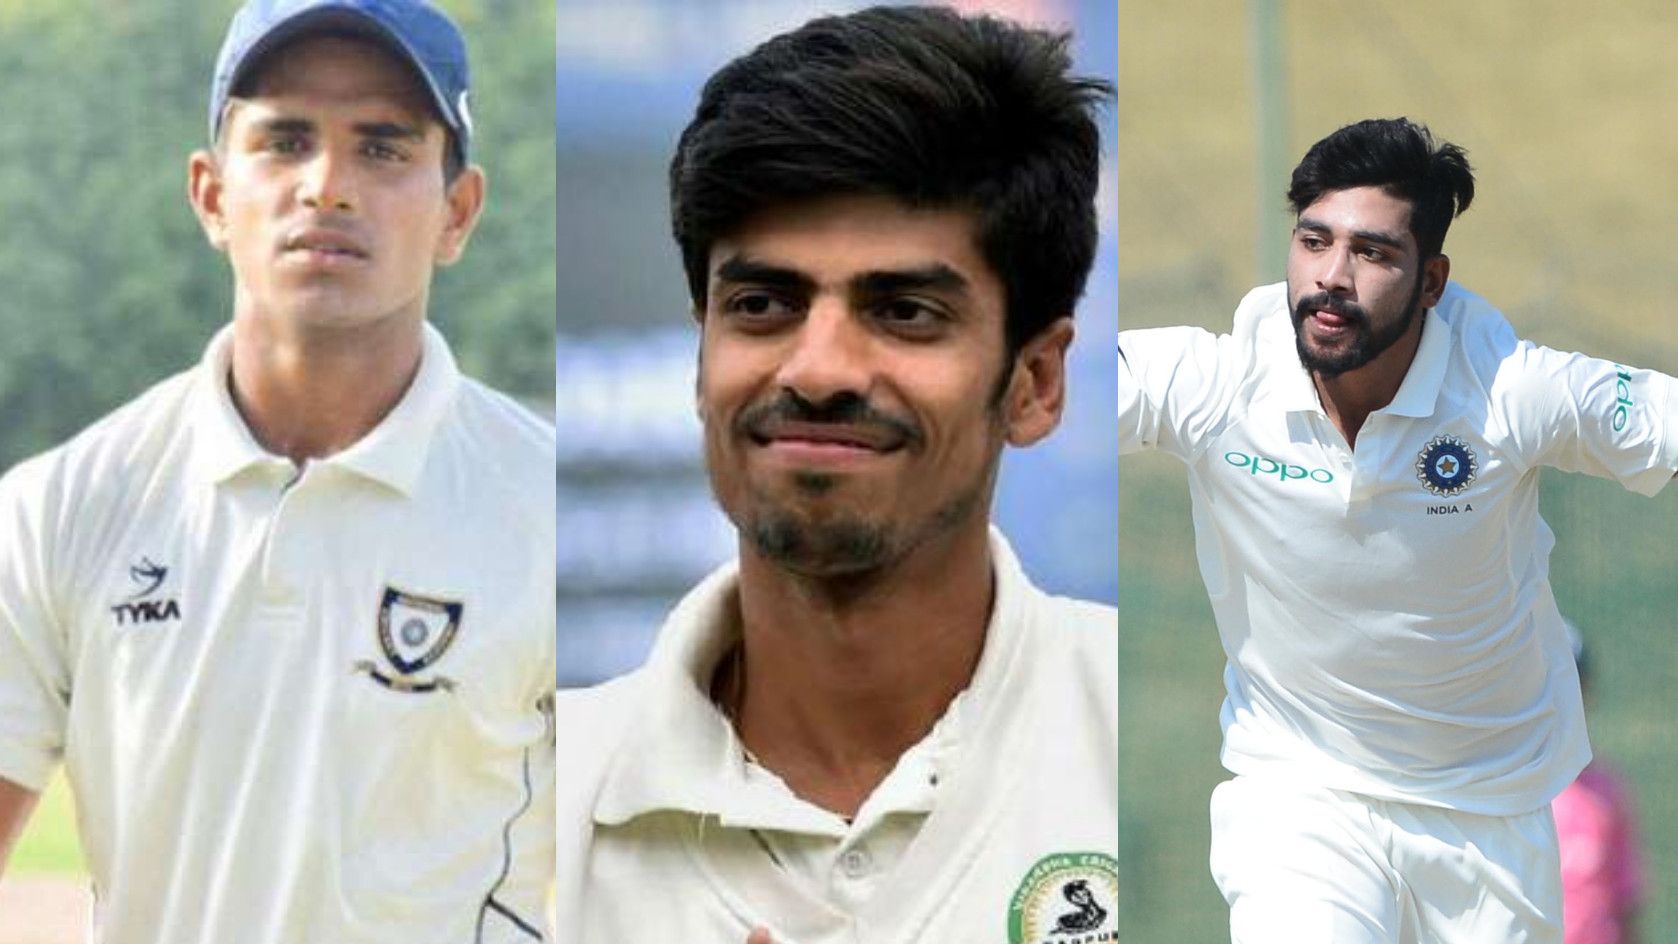 Ranji Trophy 2018-19: 5 Bowlers to keep an eye out for in the tournament